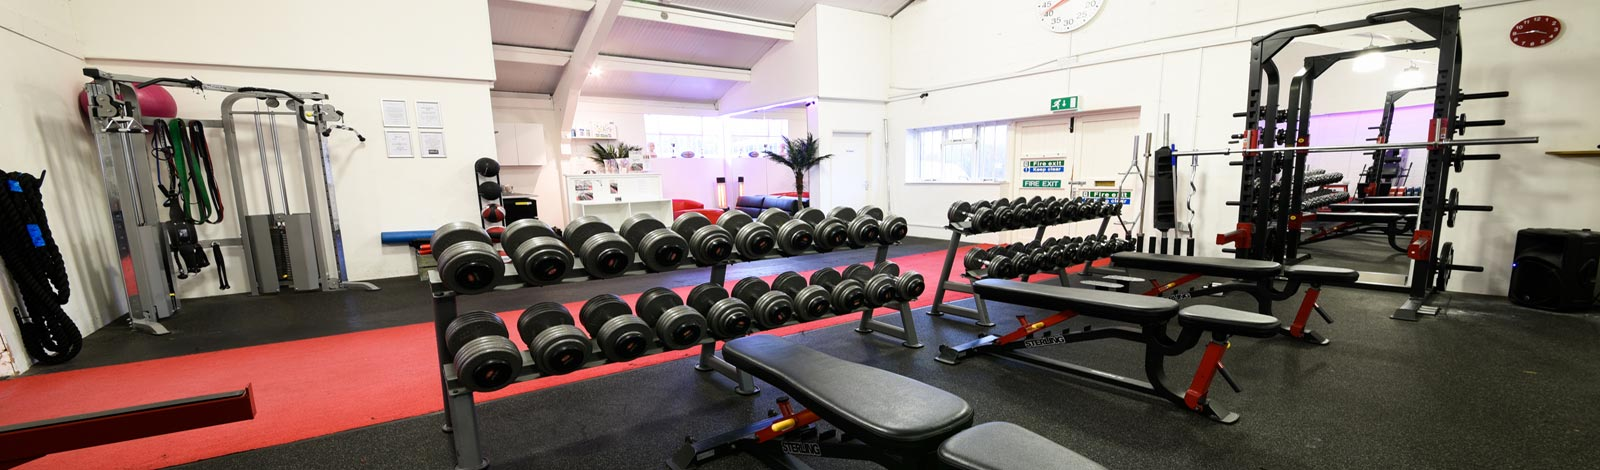 Interior of Tunbridge Wells gym